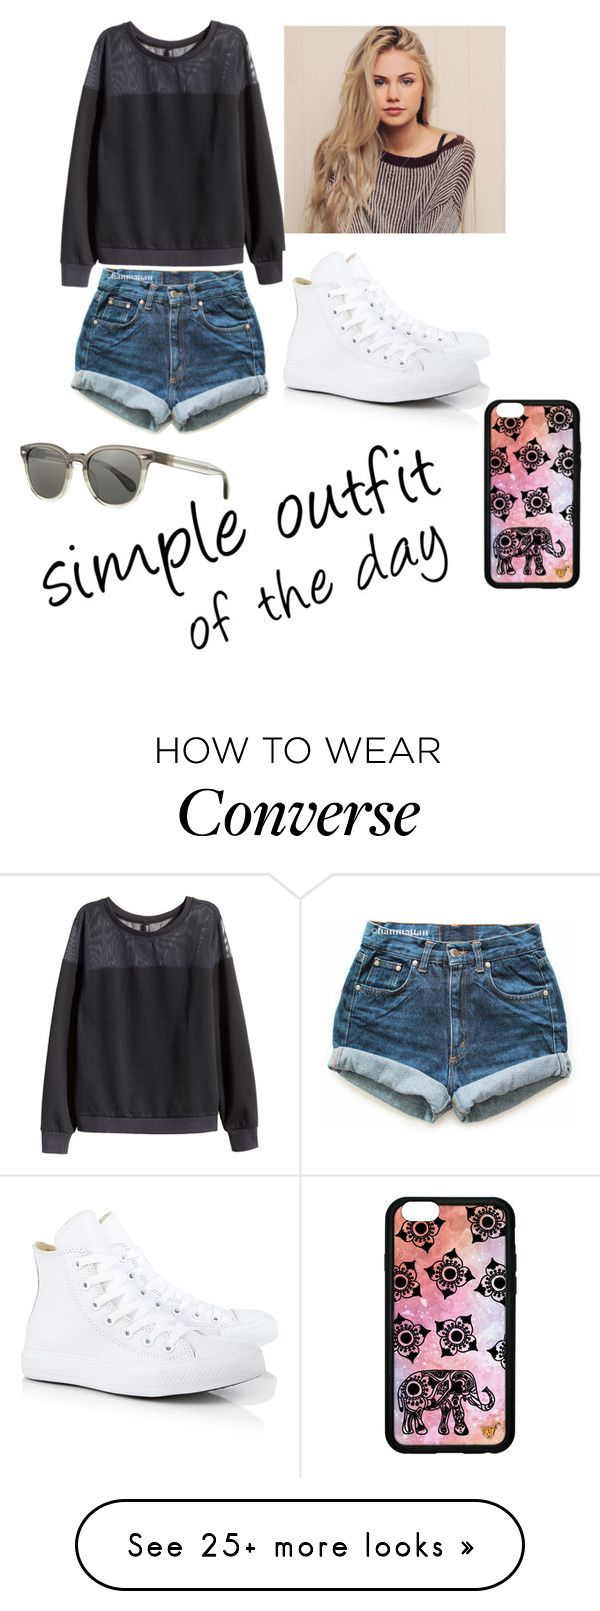 """Untitled #214"" by rileydance18 on Polyvore featuring Mode, H&M, Levi's, Converse, Forever 21 und Oliver Peoples"